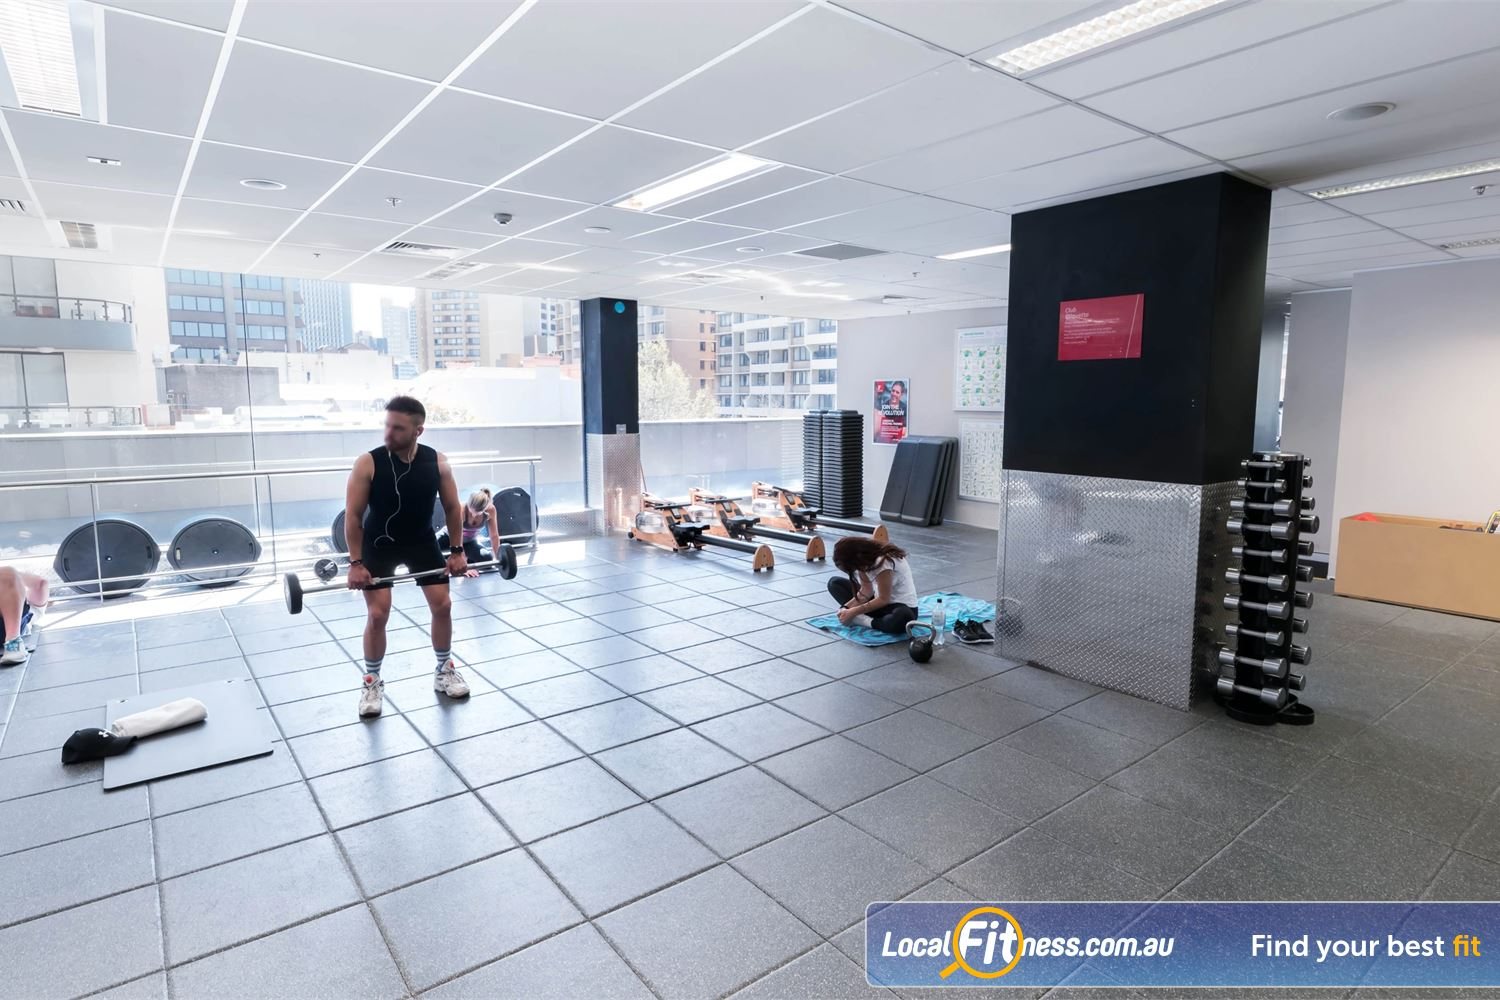 Fitness First Platinum Darlinghurst Our Darlinghurst gym provides a fully equipped freestyle HIIT gym area.